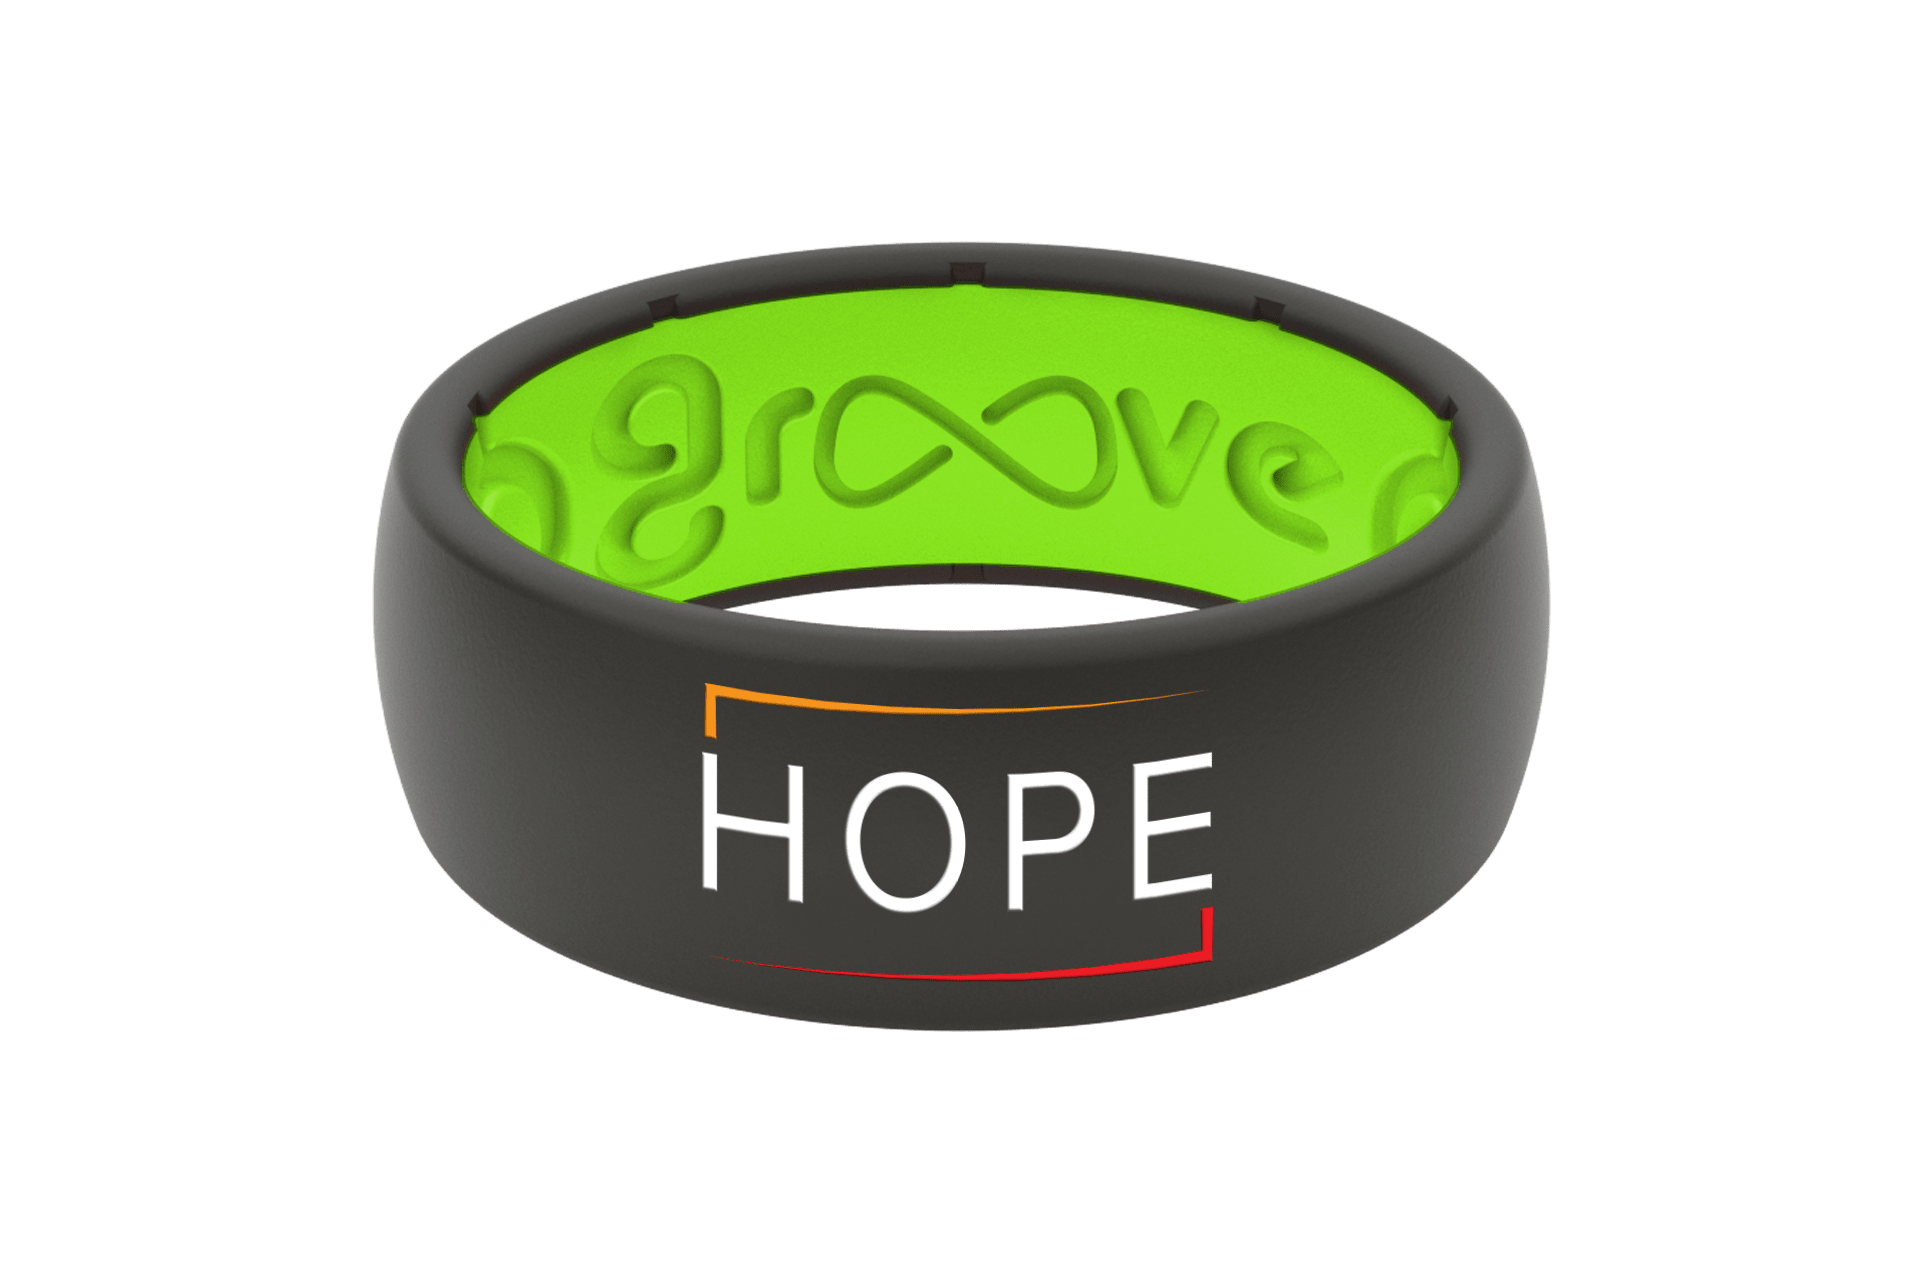 Original Solid E3 Hope Black/Green - Groove Life Silicone Wedding Rings